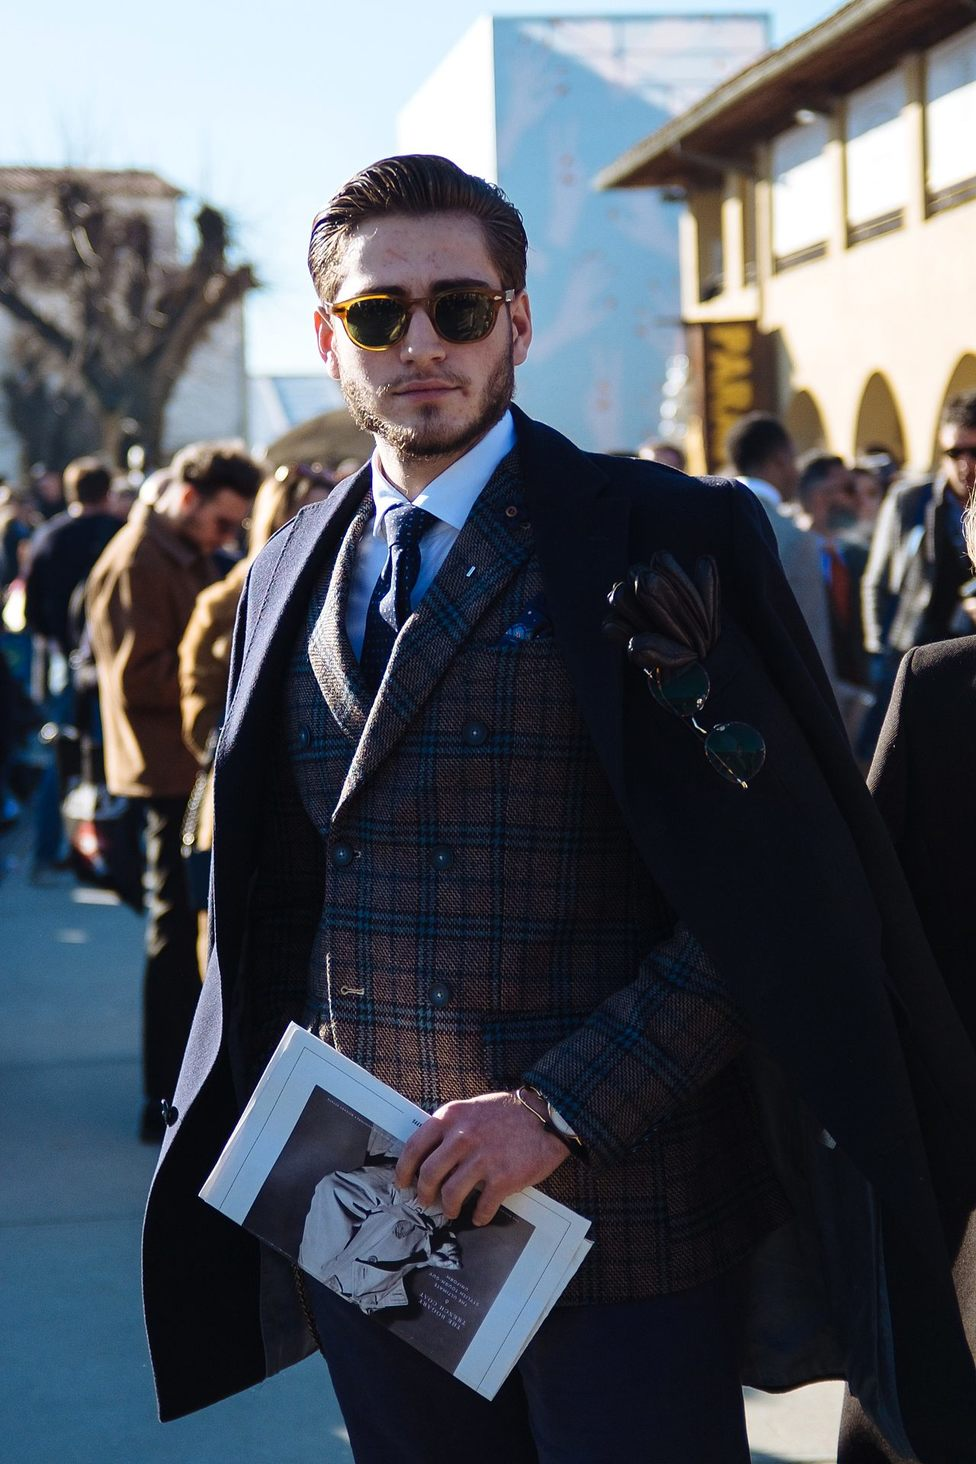 Firenze-89-Pitti-Uomo-Fashion-Photography-33